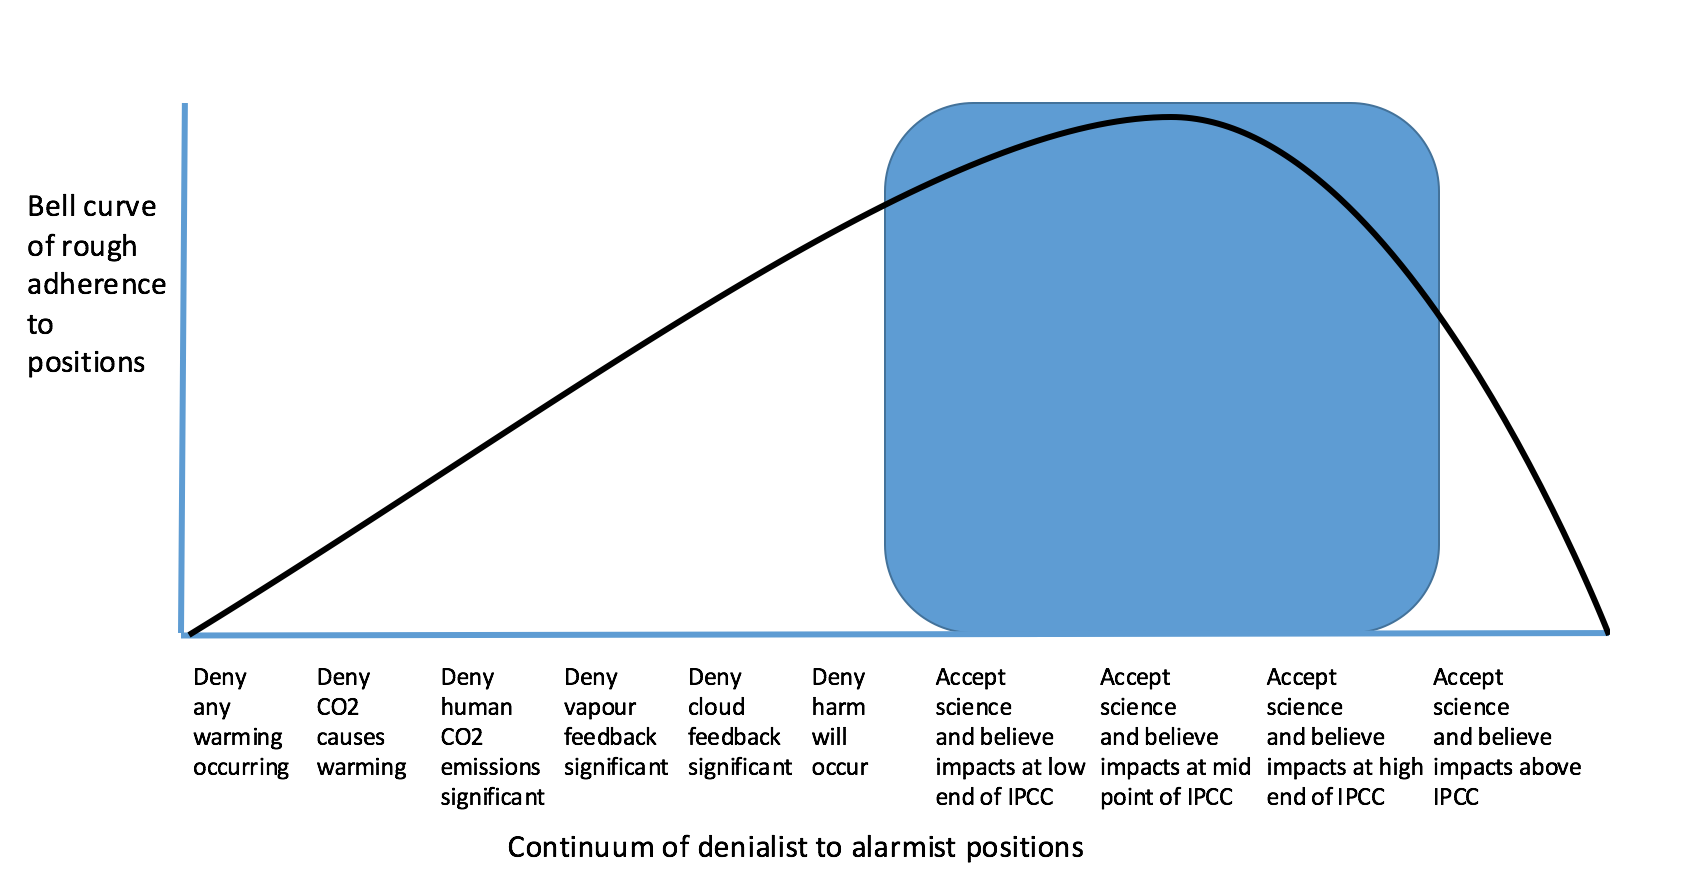 Continuum of denialist to accepting positions